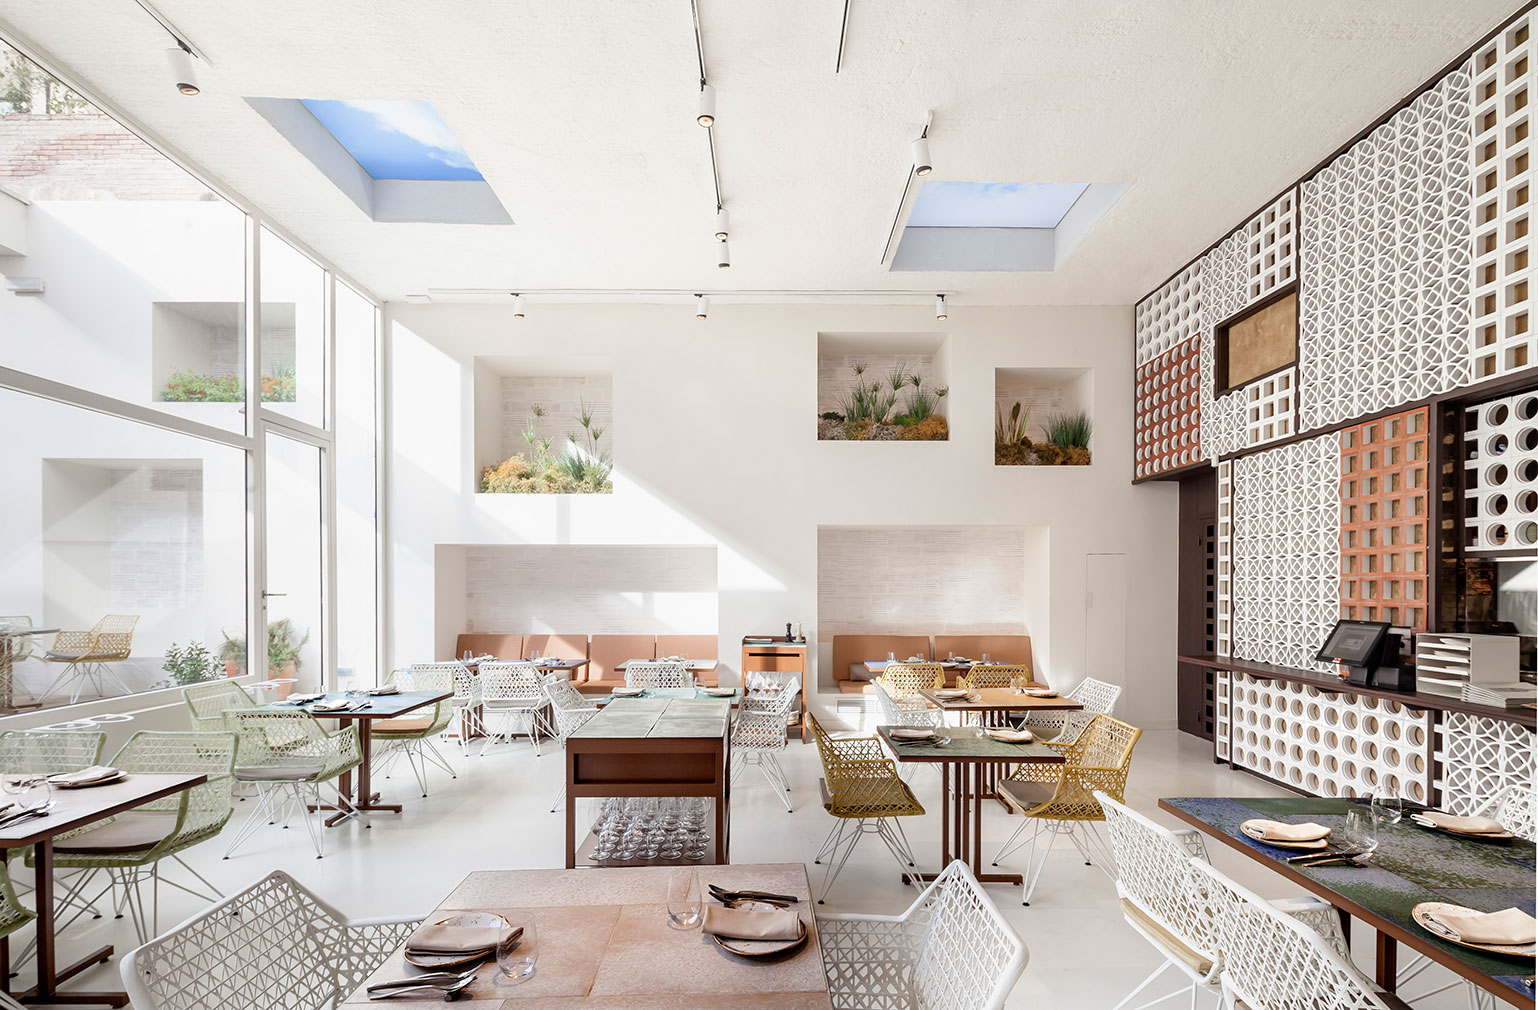 10 barcelona restaurants with awe inspiring interiors rh thespaces com barcelona interior design jobs barcelona interior design master